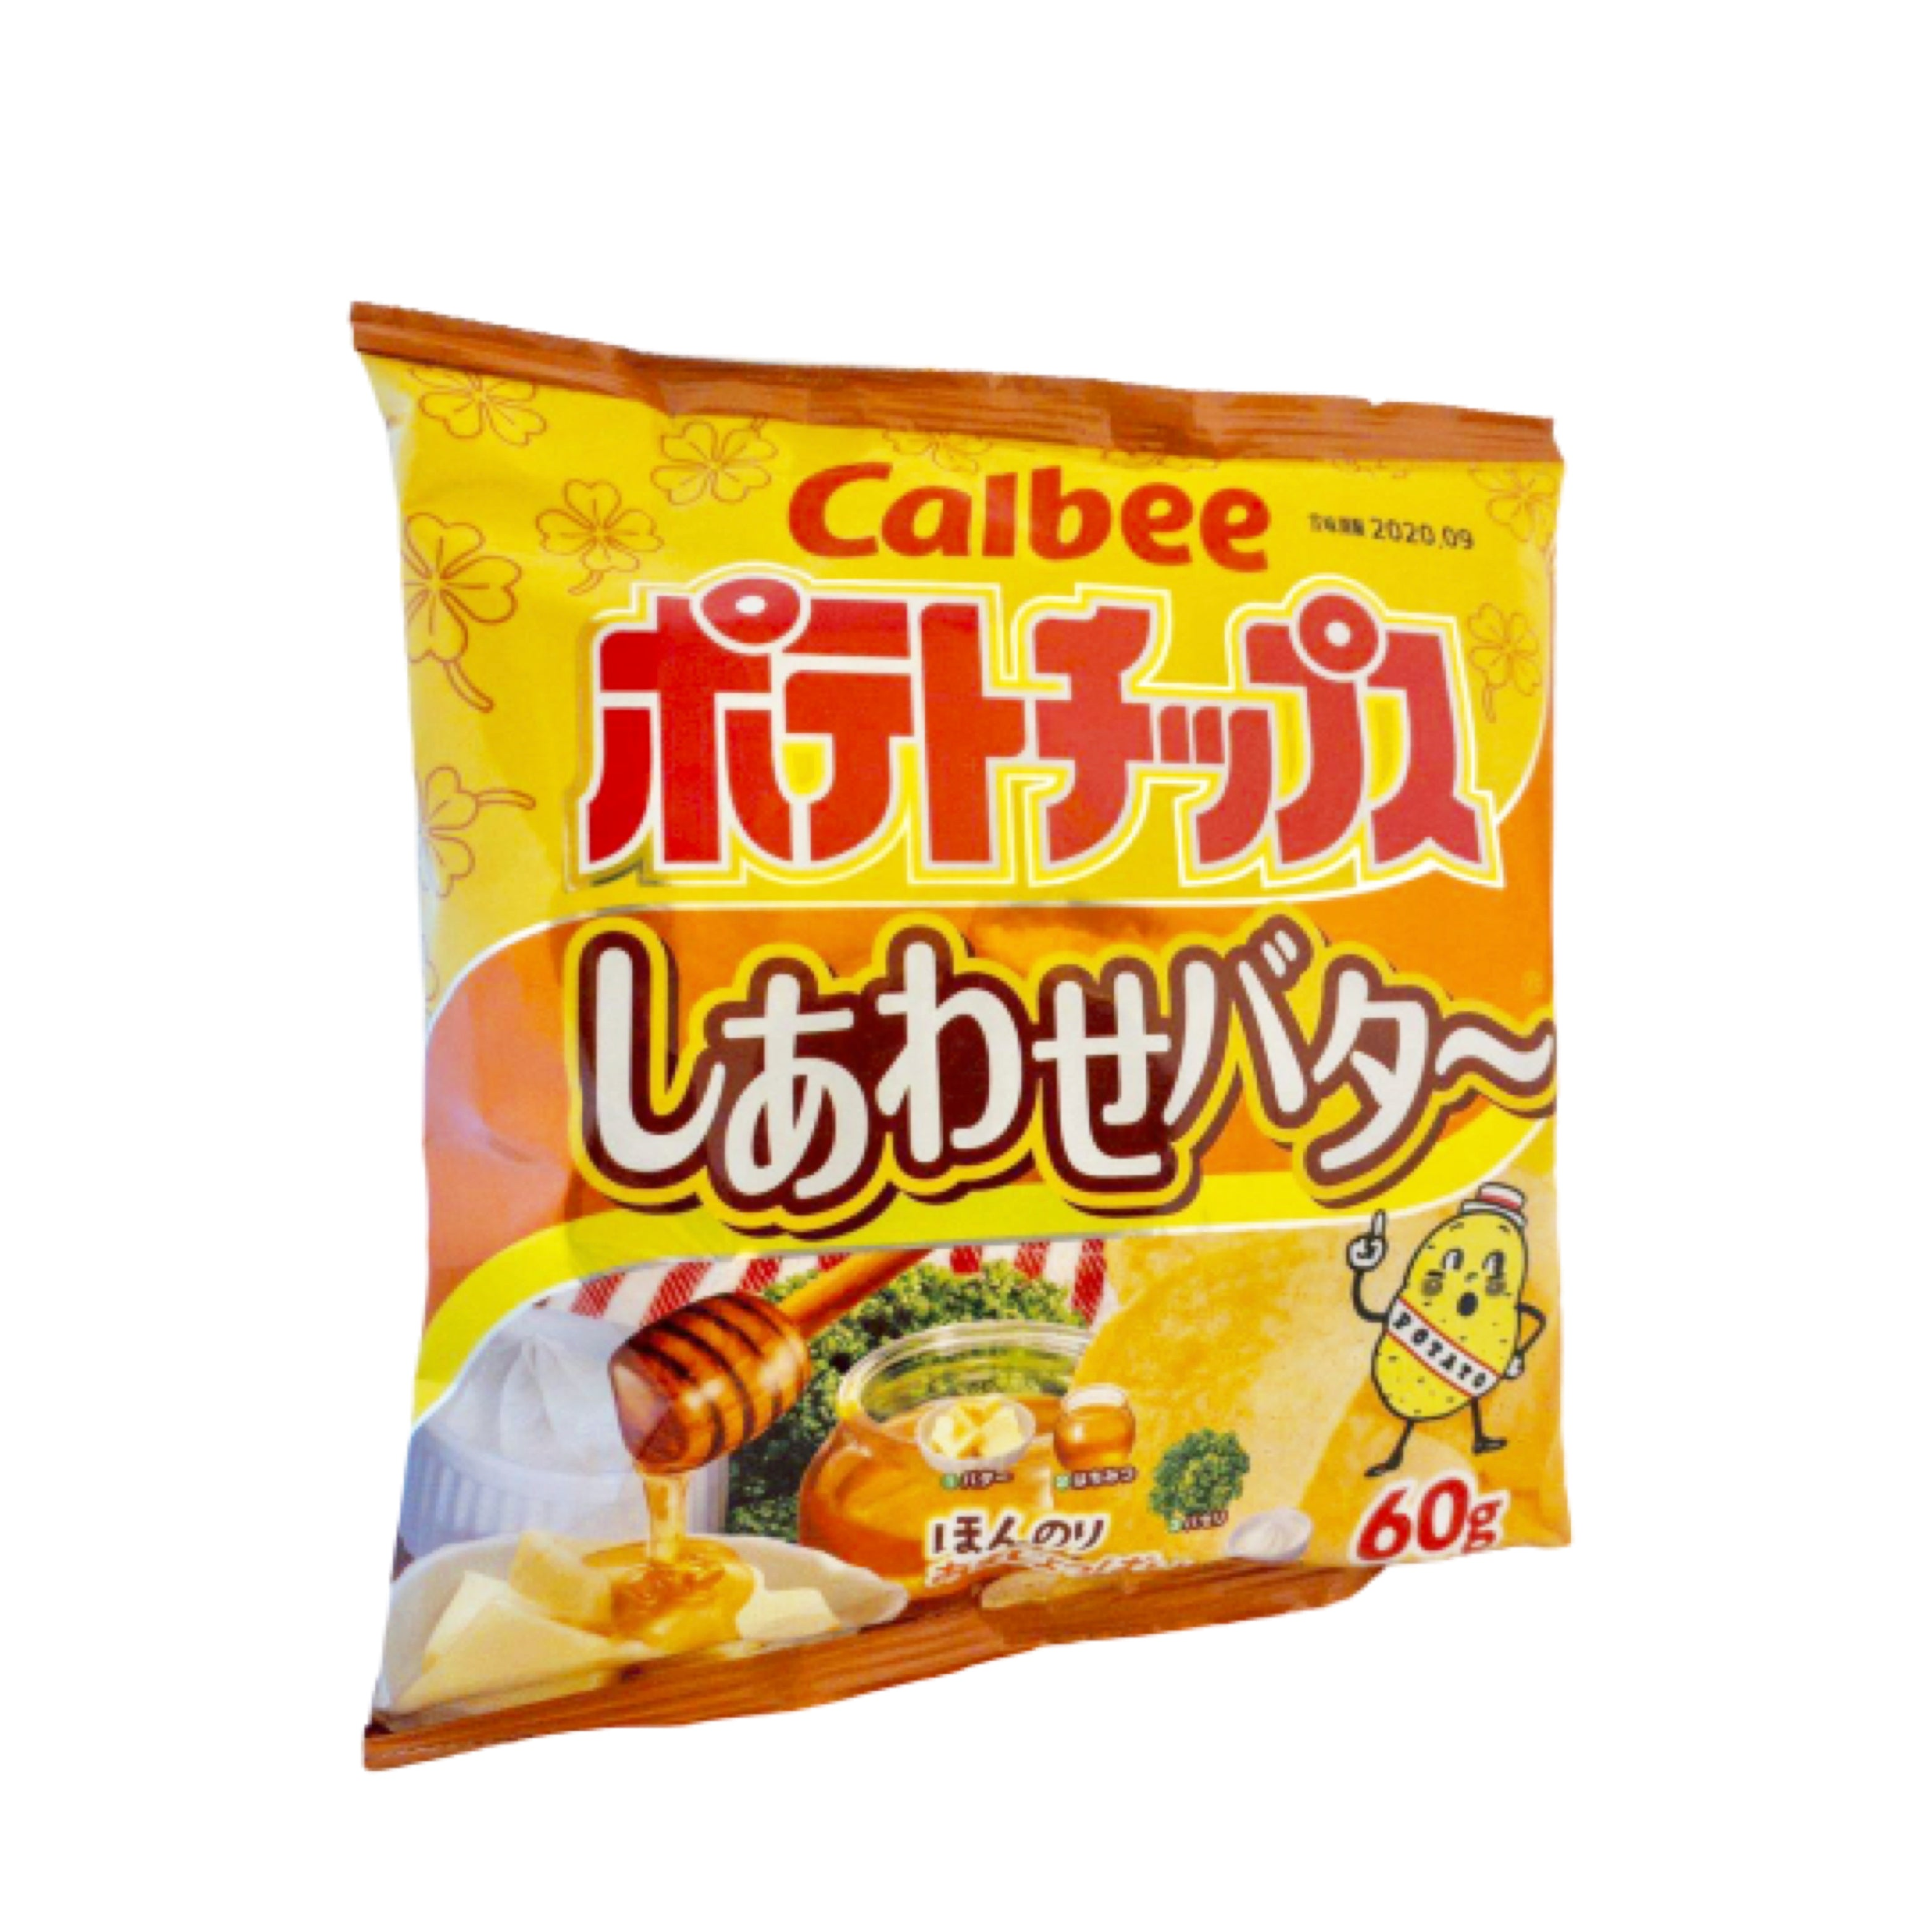 Calbee Potato Chips Honey Butter Flavor 可必洋芋片 蜂蜜奶油味